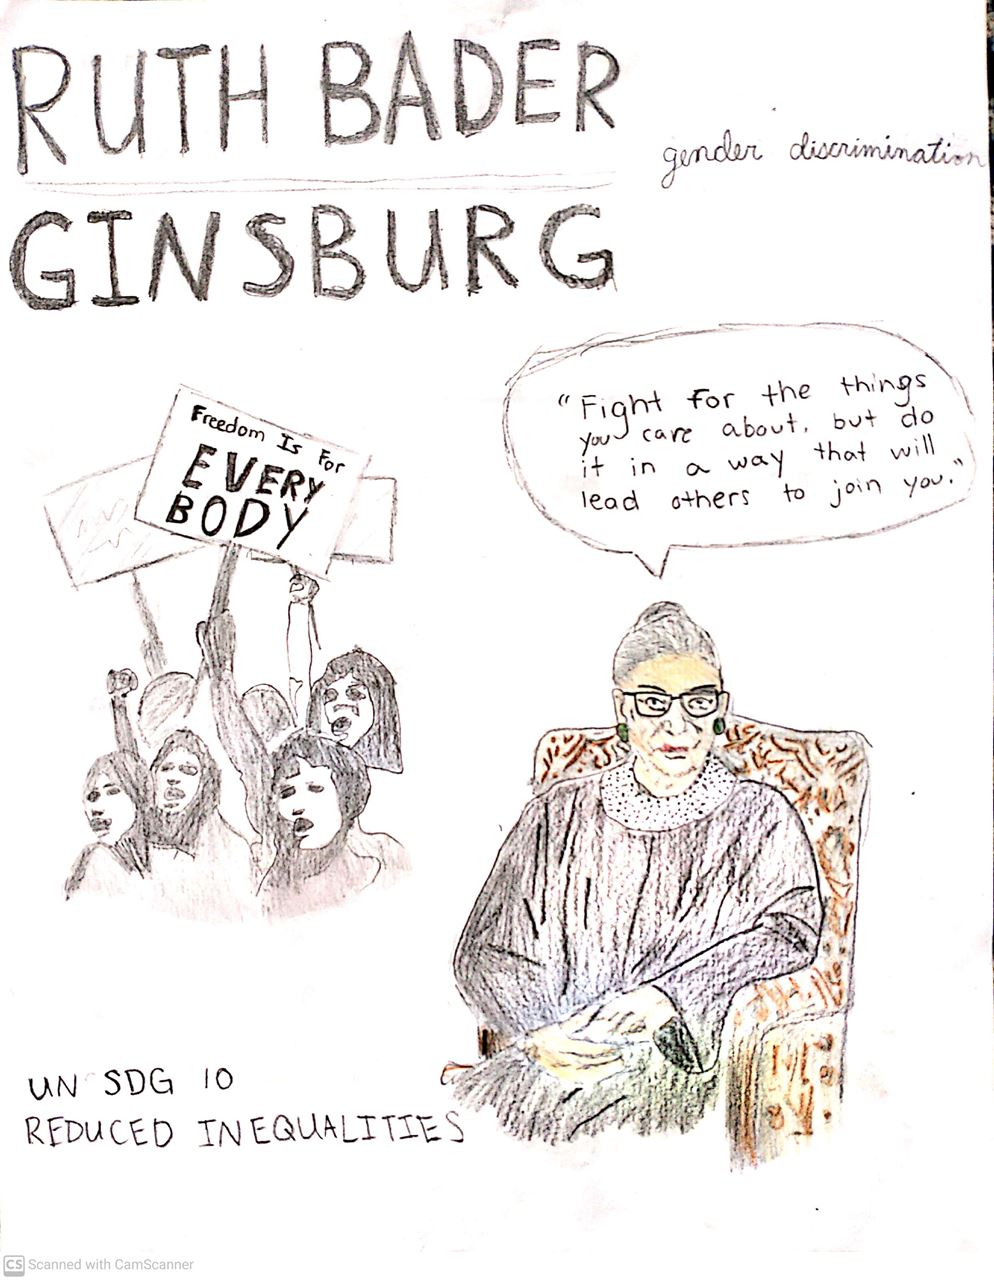 Picture of Ruth Bader Ginsburg By: Lily Cooke